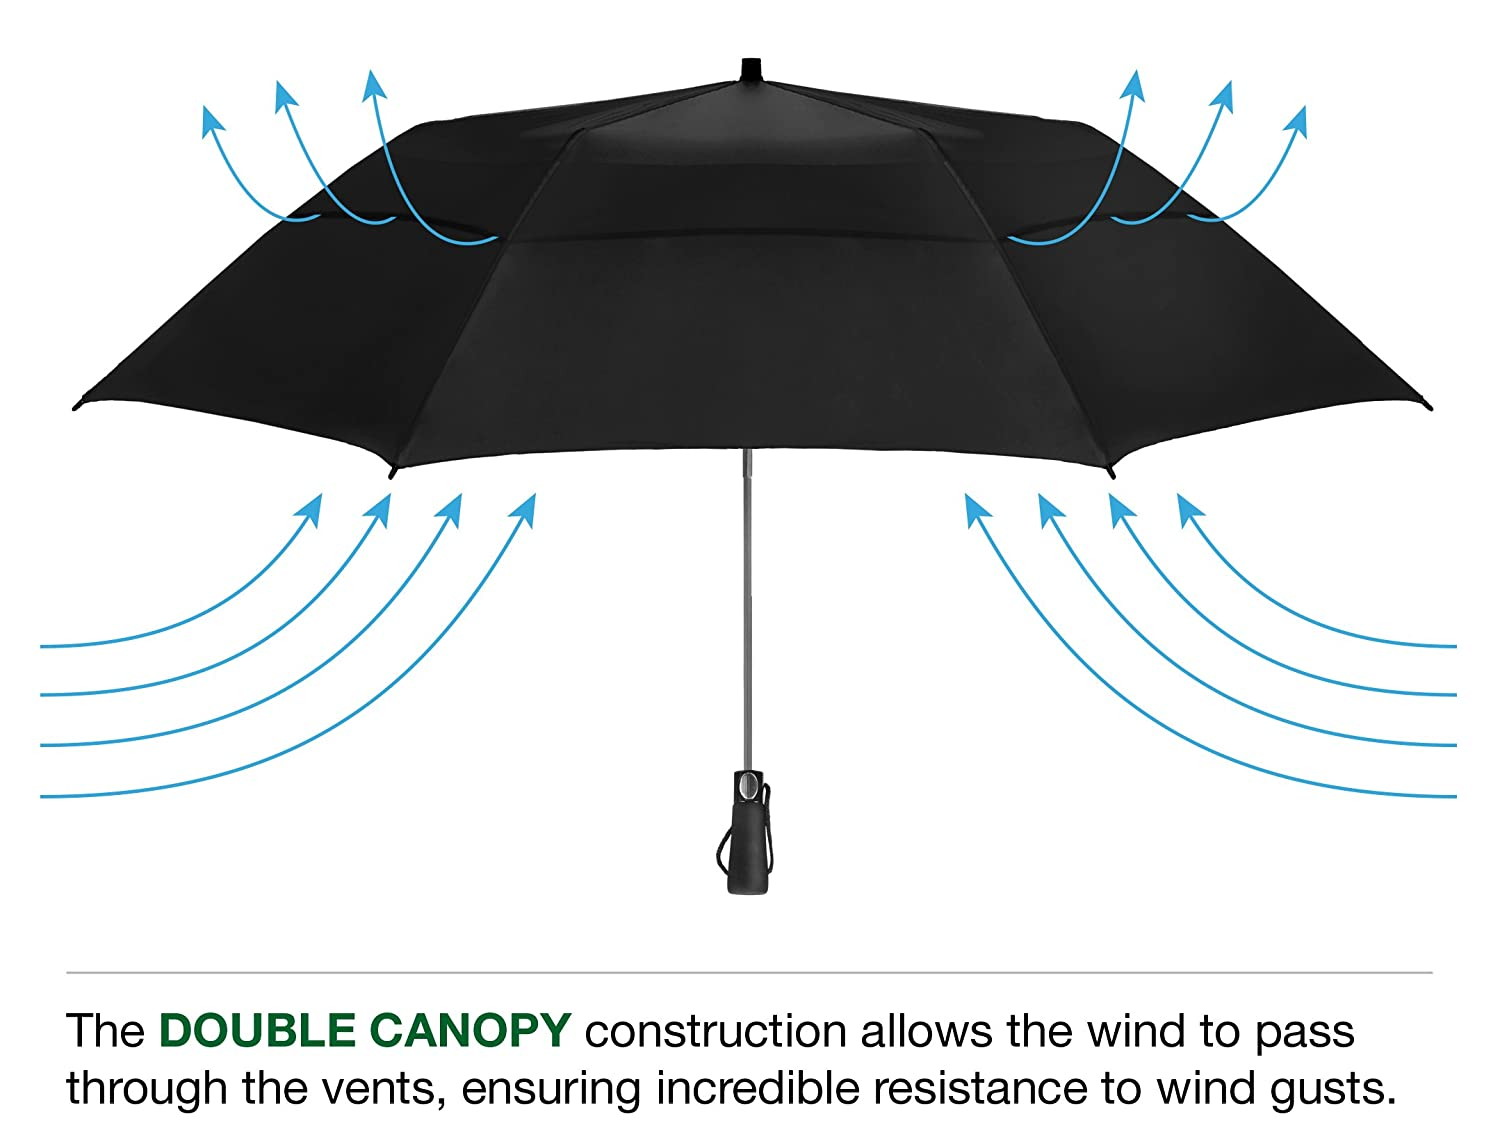 Amazon.com  EEZ-Y Folding Golf Umbrella 58-inch Large Windproof Double Canopy - Auto Open Sturdy and Portable (Black)  Sports u0026 Outdoors  sc 1 st  Amazon.com & Amazon.com : EEZ-Y Folding Golf Umbrella 58-inch Large Windproof ...